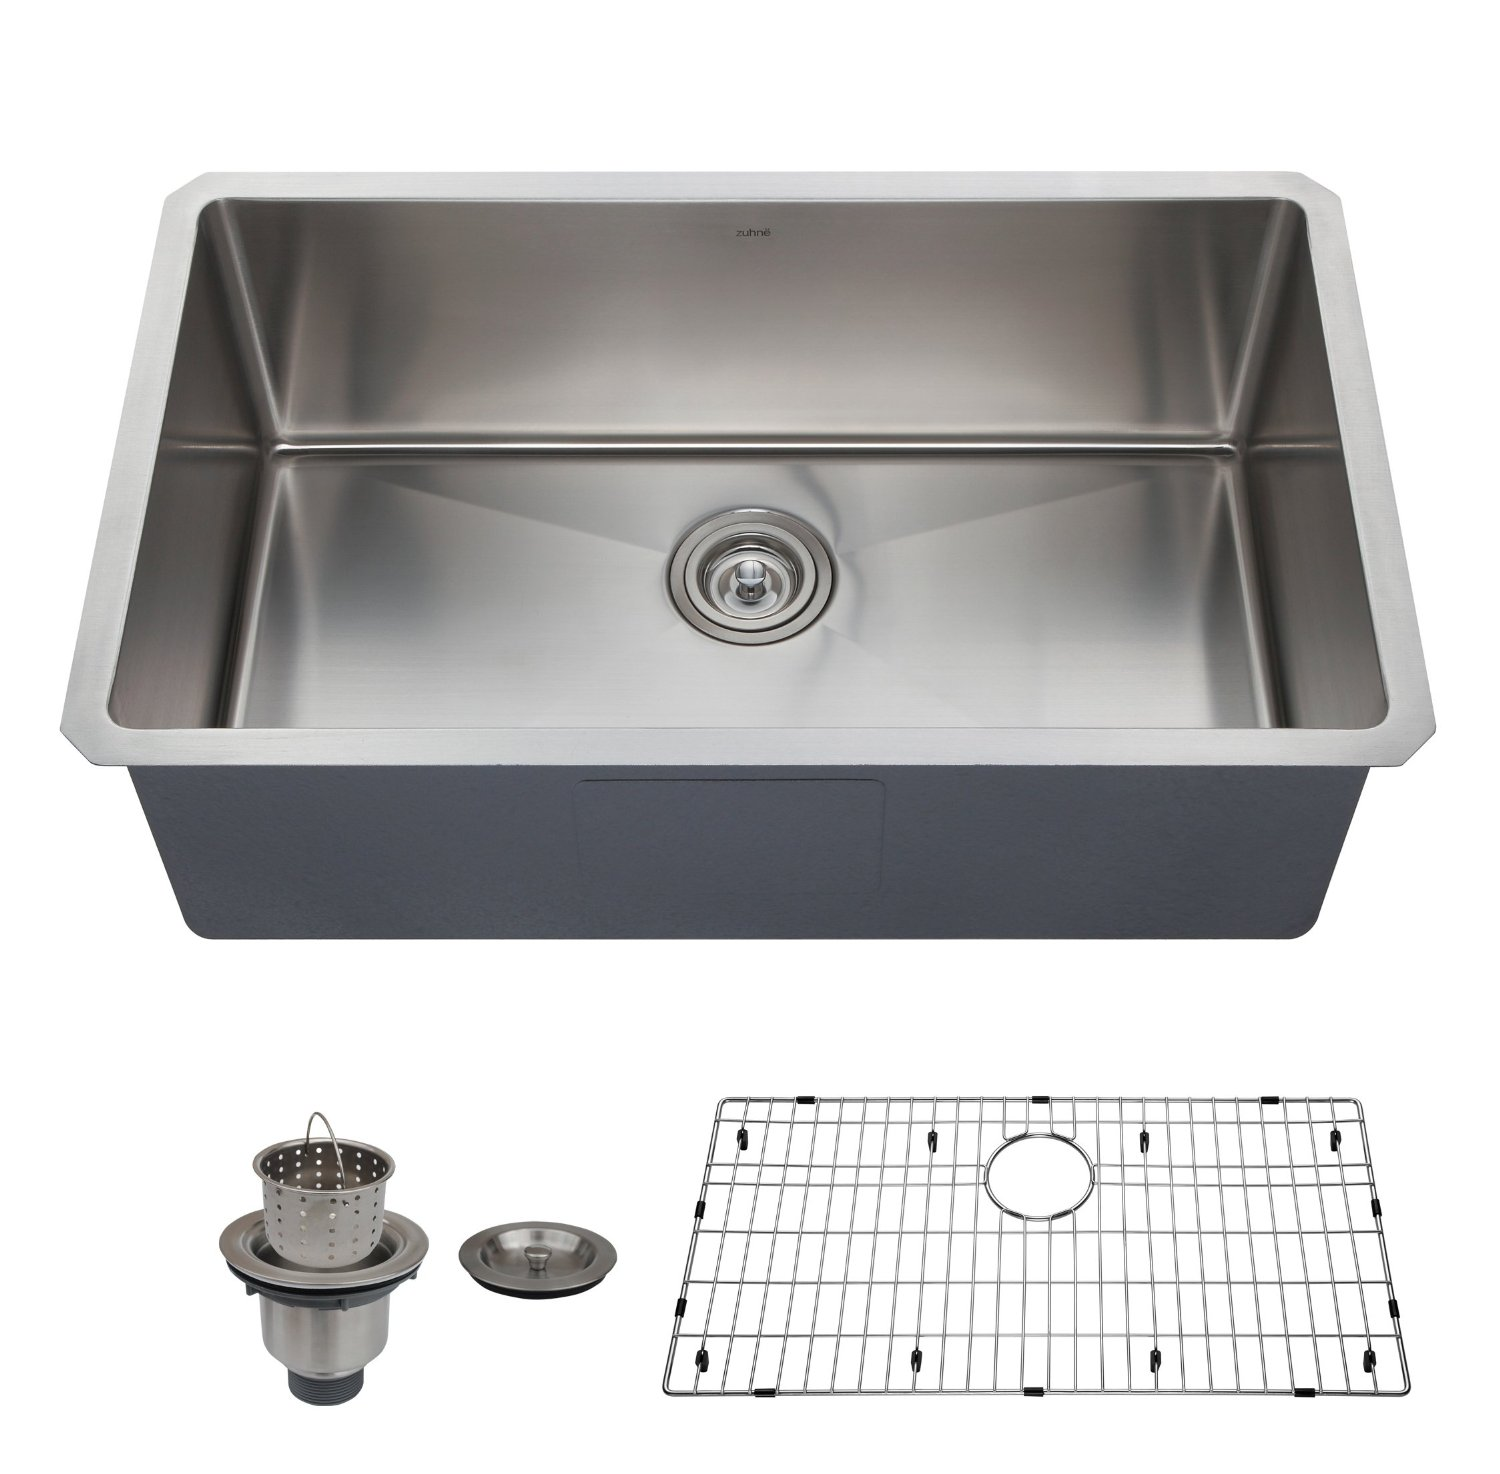 Grohe Kitchen Sink Faucets Best Single Bowl Kitchen Sink Reviews Buying Guide Bkfh